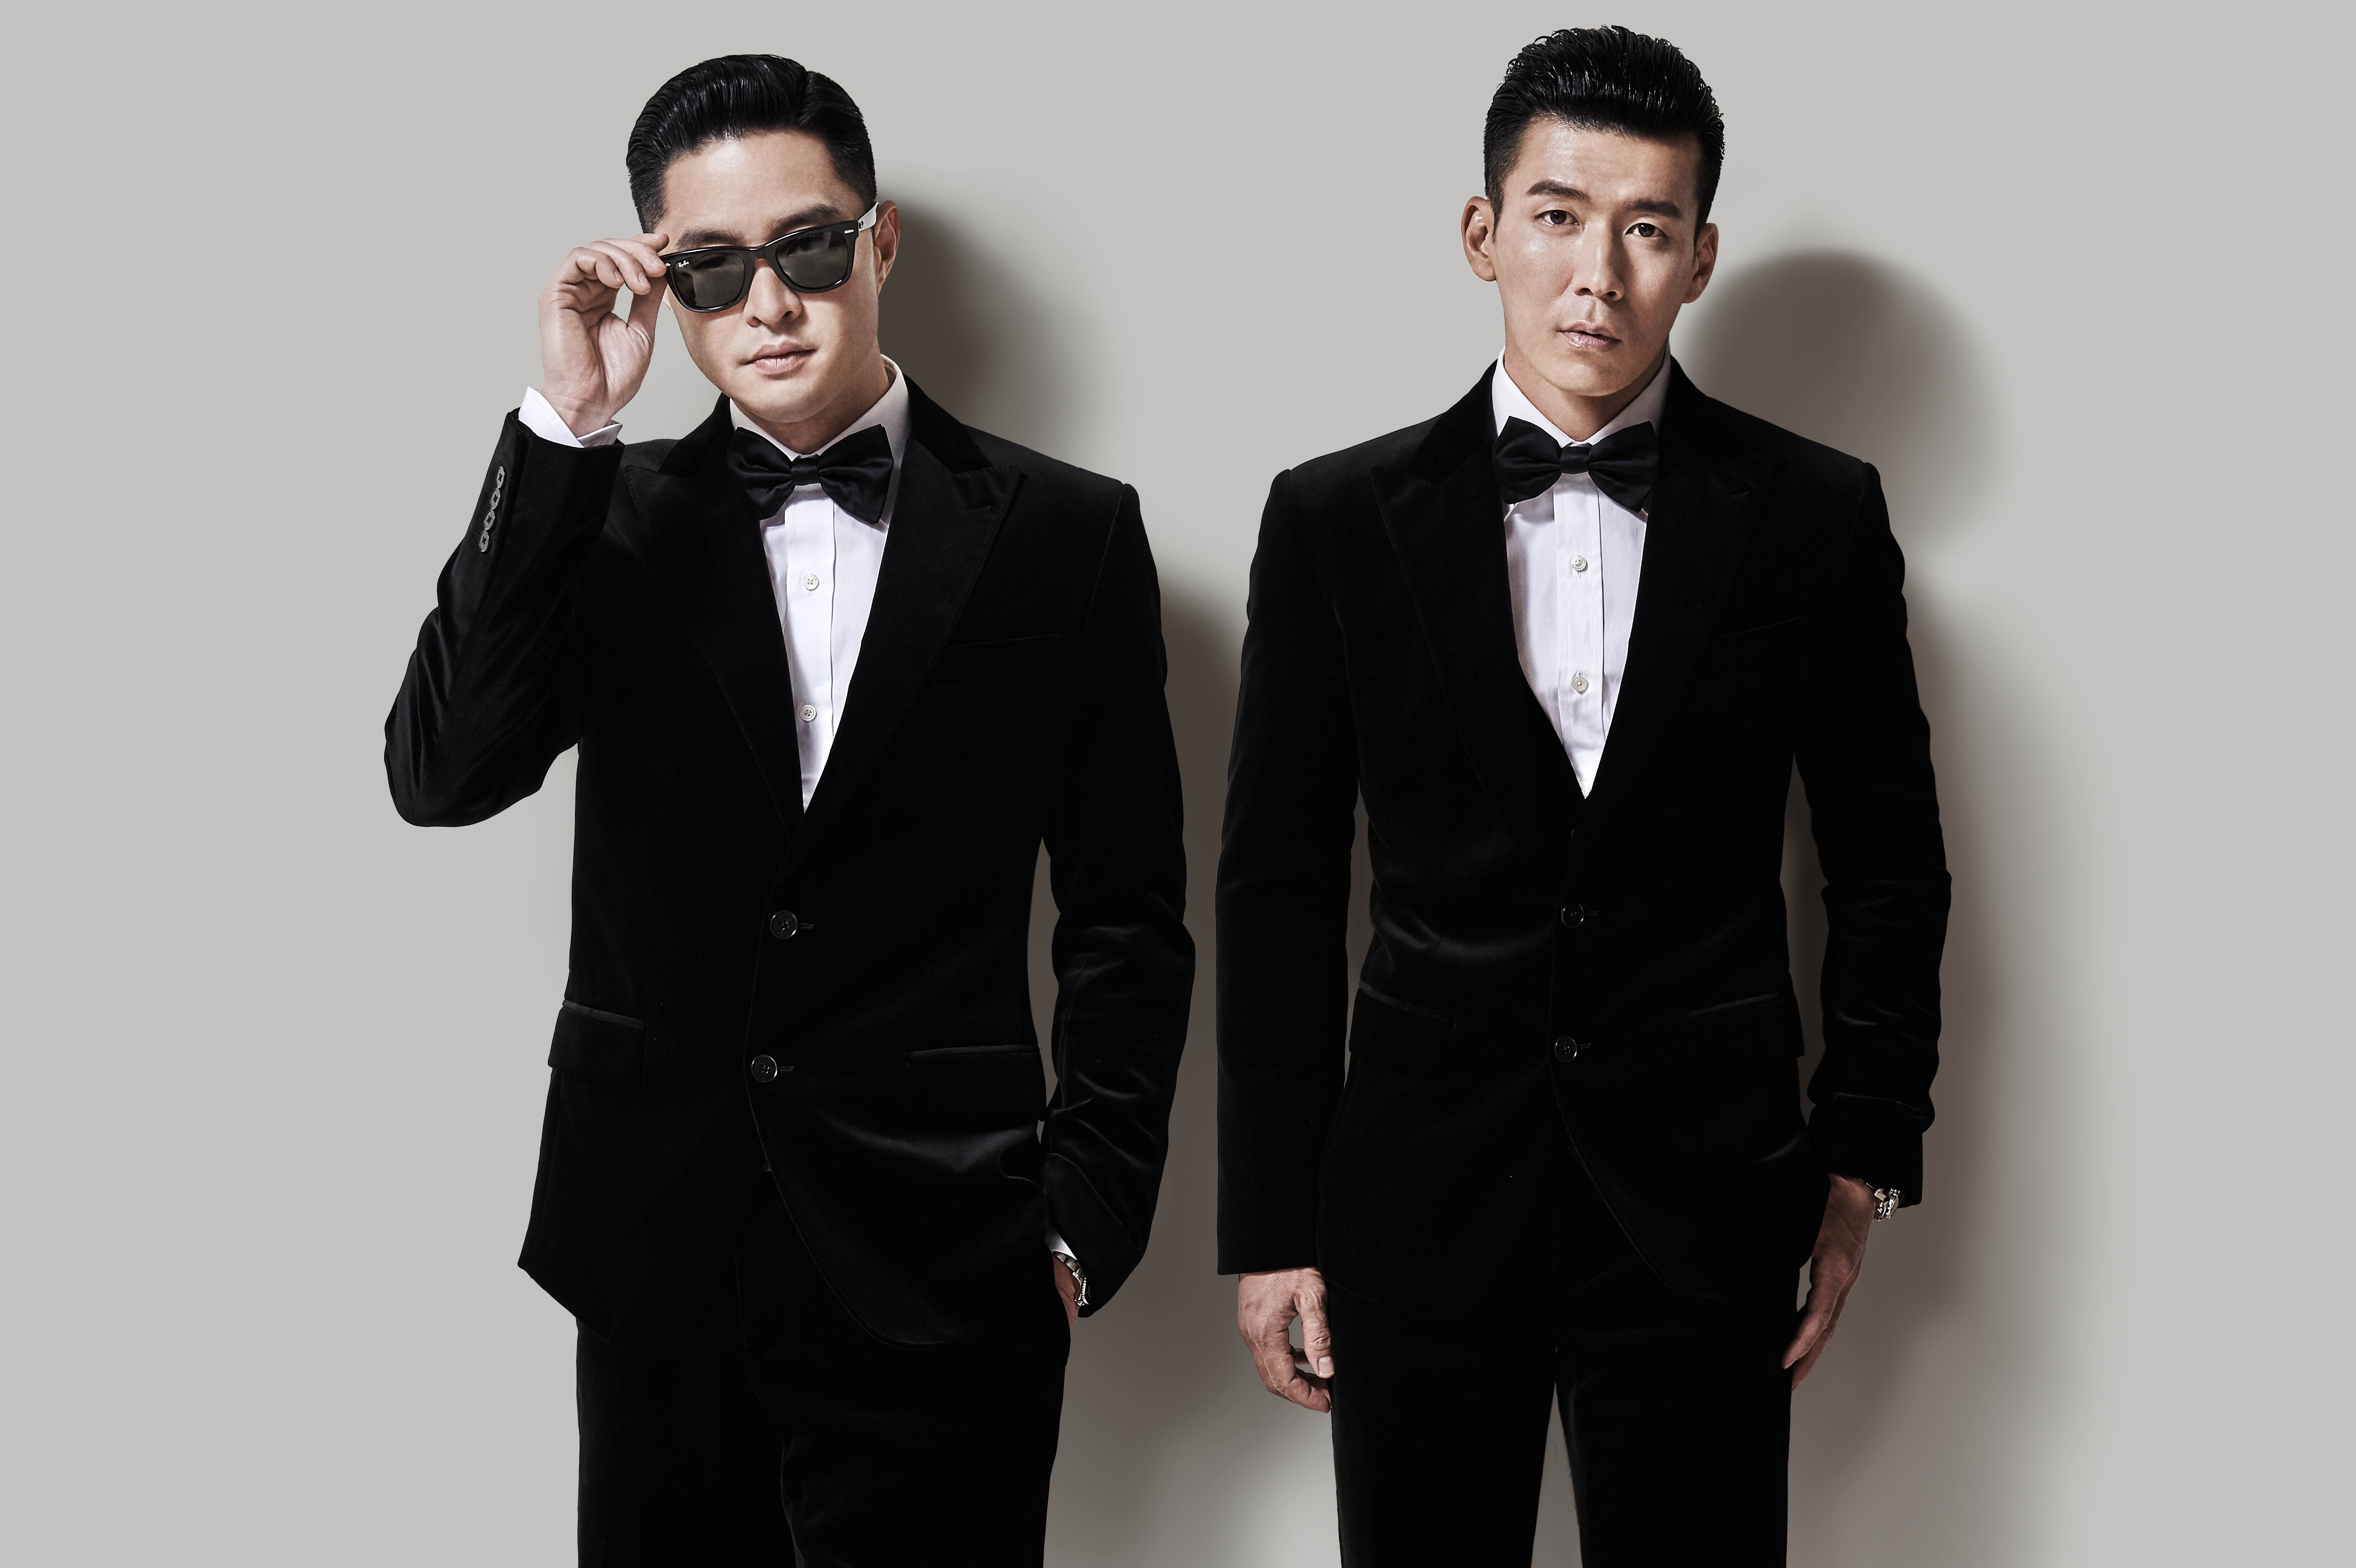 Upcoming Busan Festival To Heat Up The Summer with Jinusean, Epik High and Zion.T